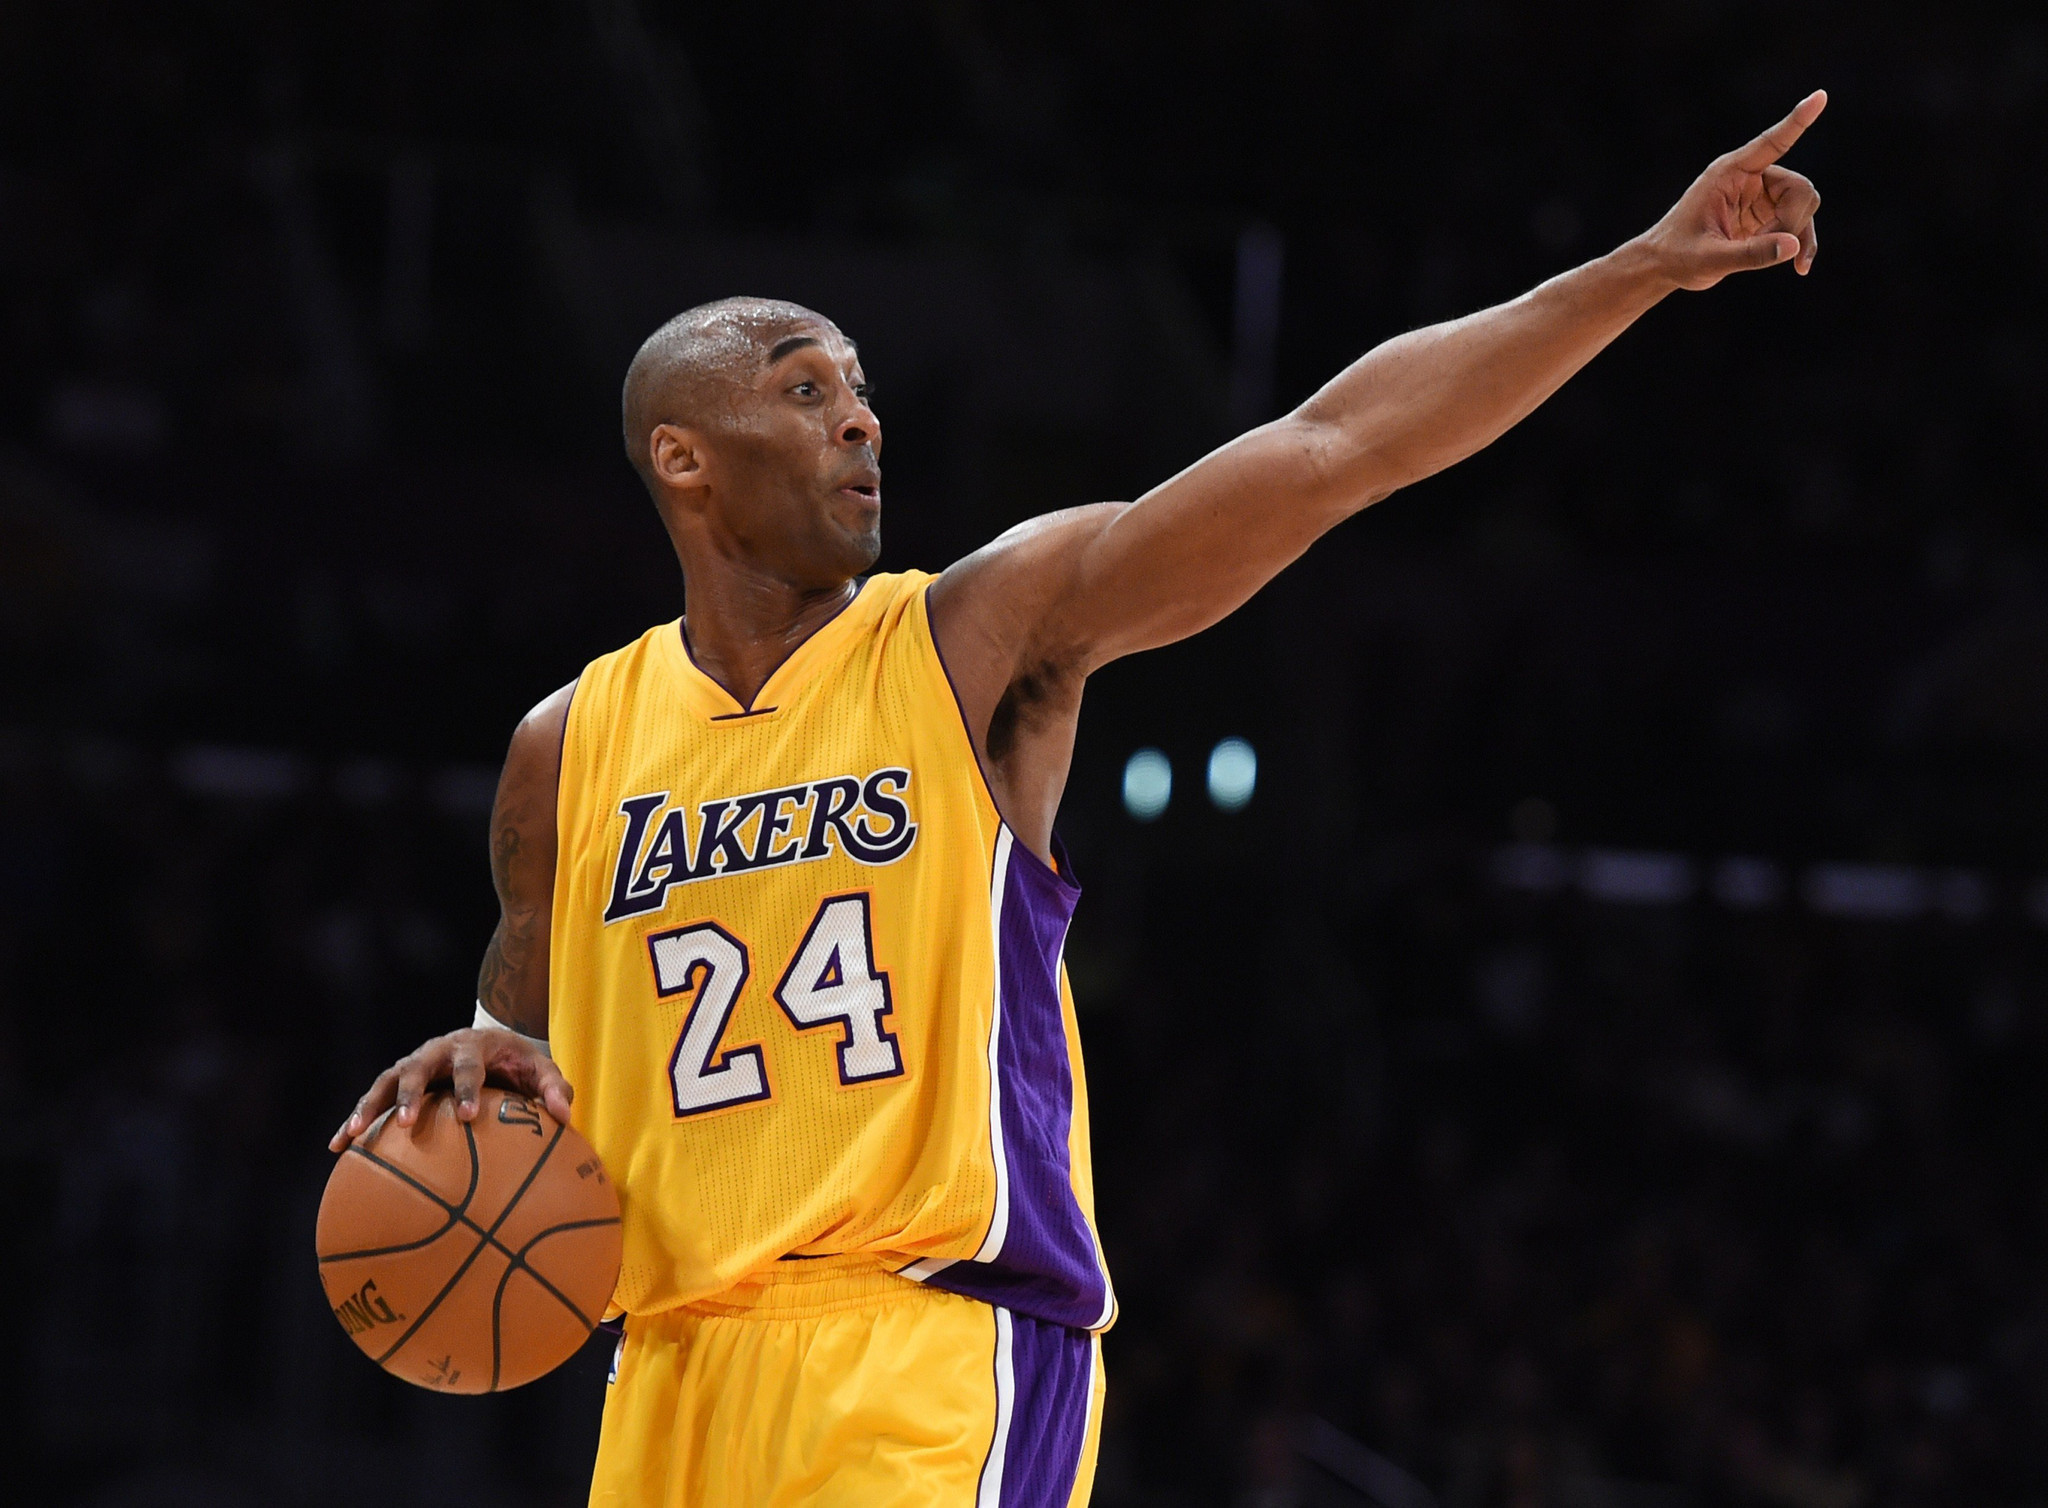 A life and career of kobe bryant